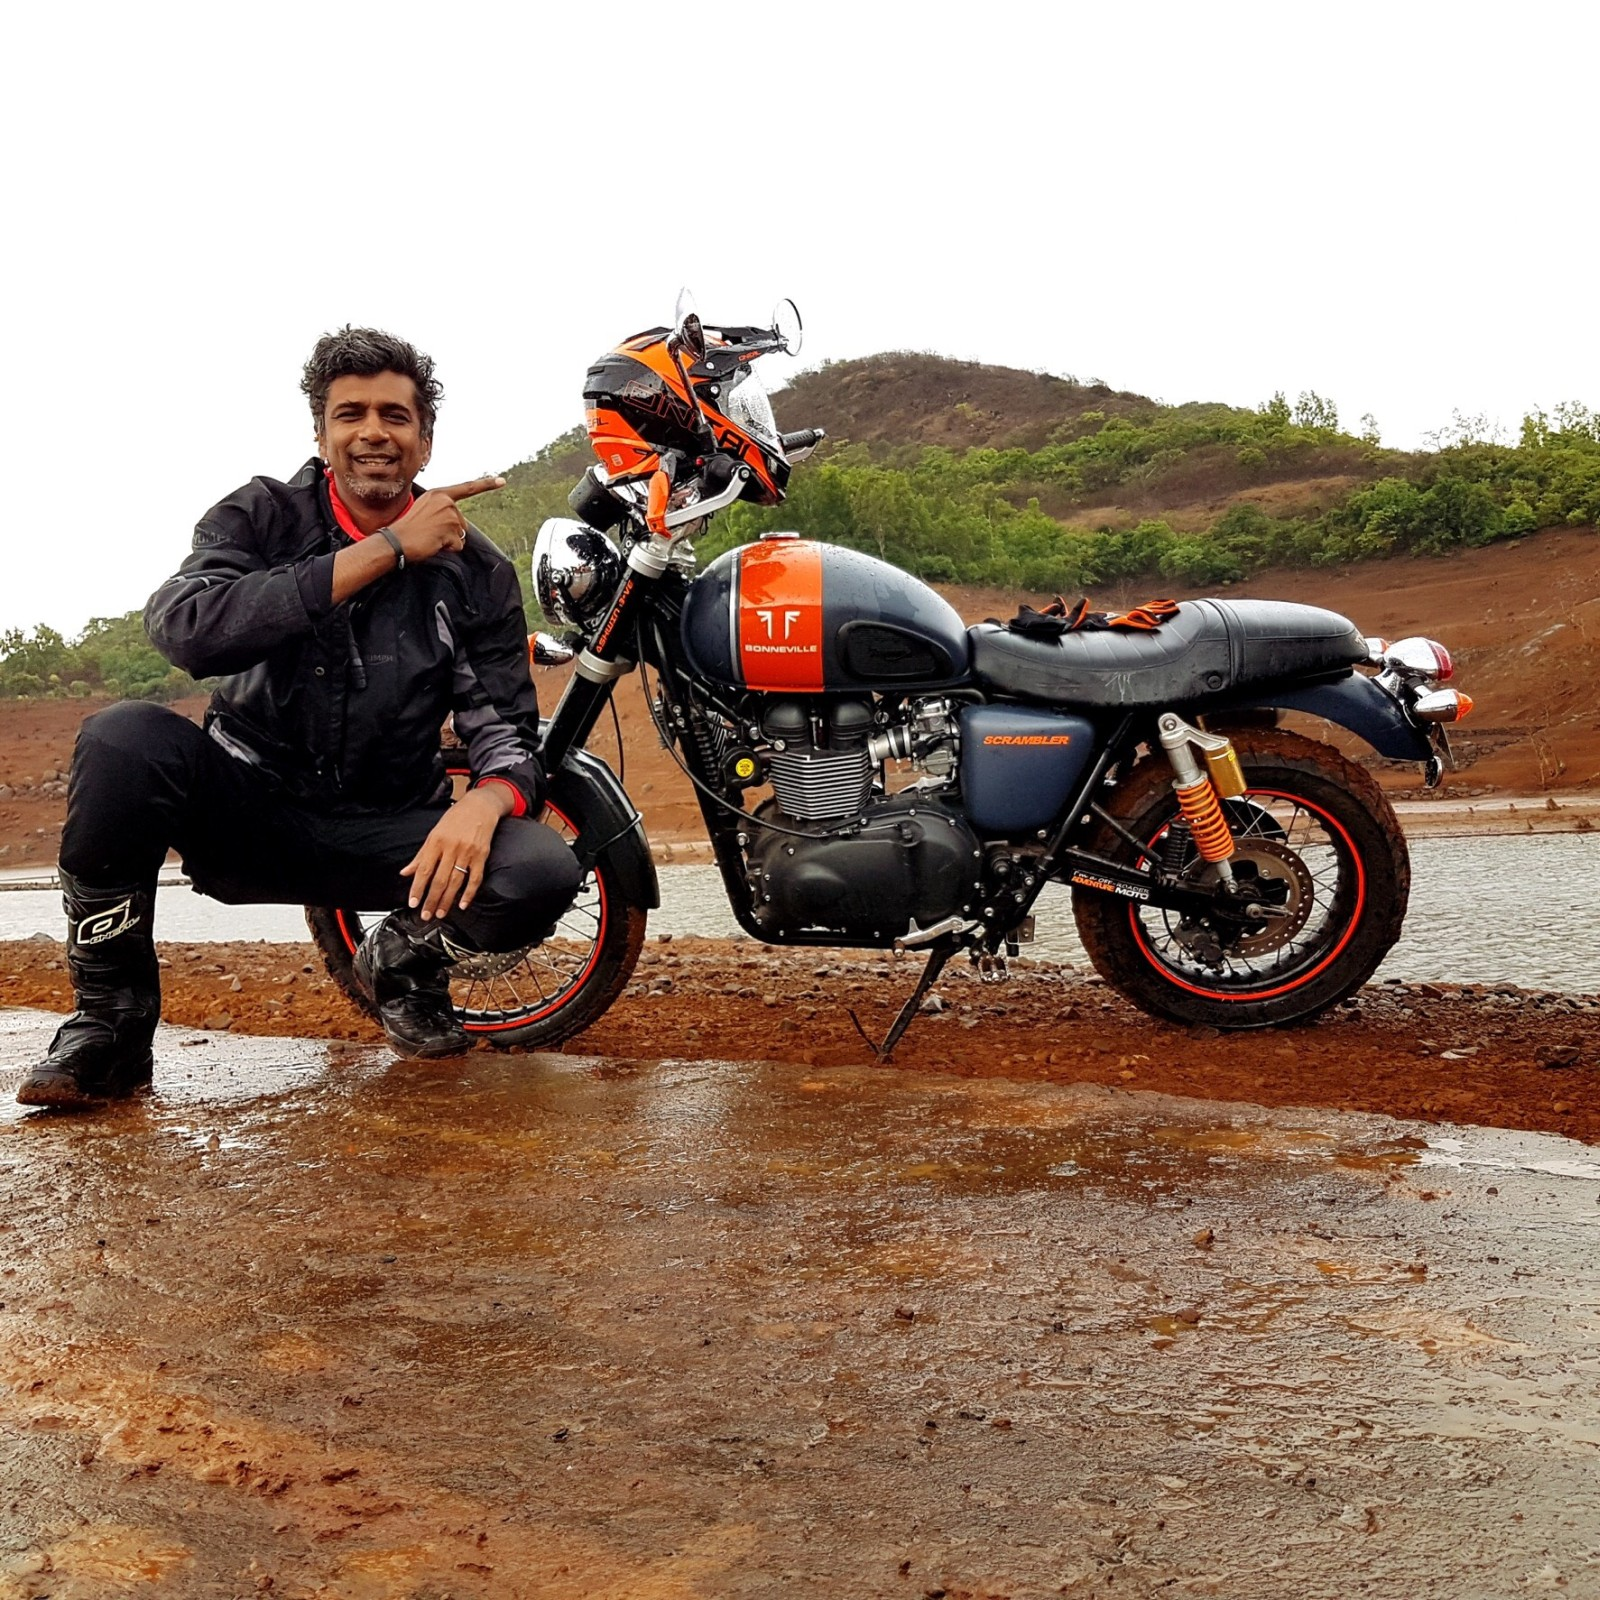 Customised Triumph Scrambler - Riding Shots - Ashwin (2)